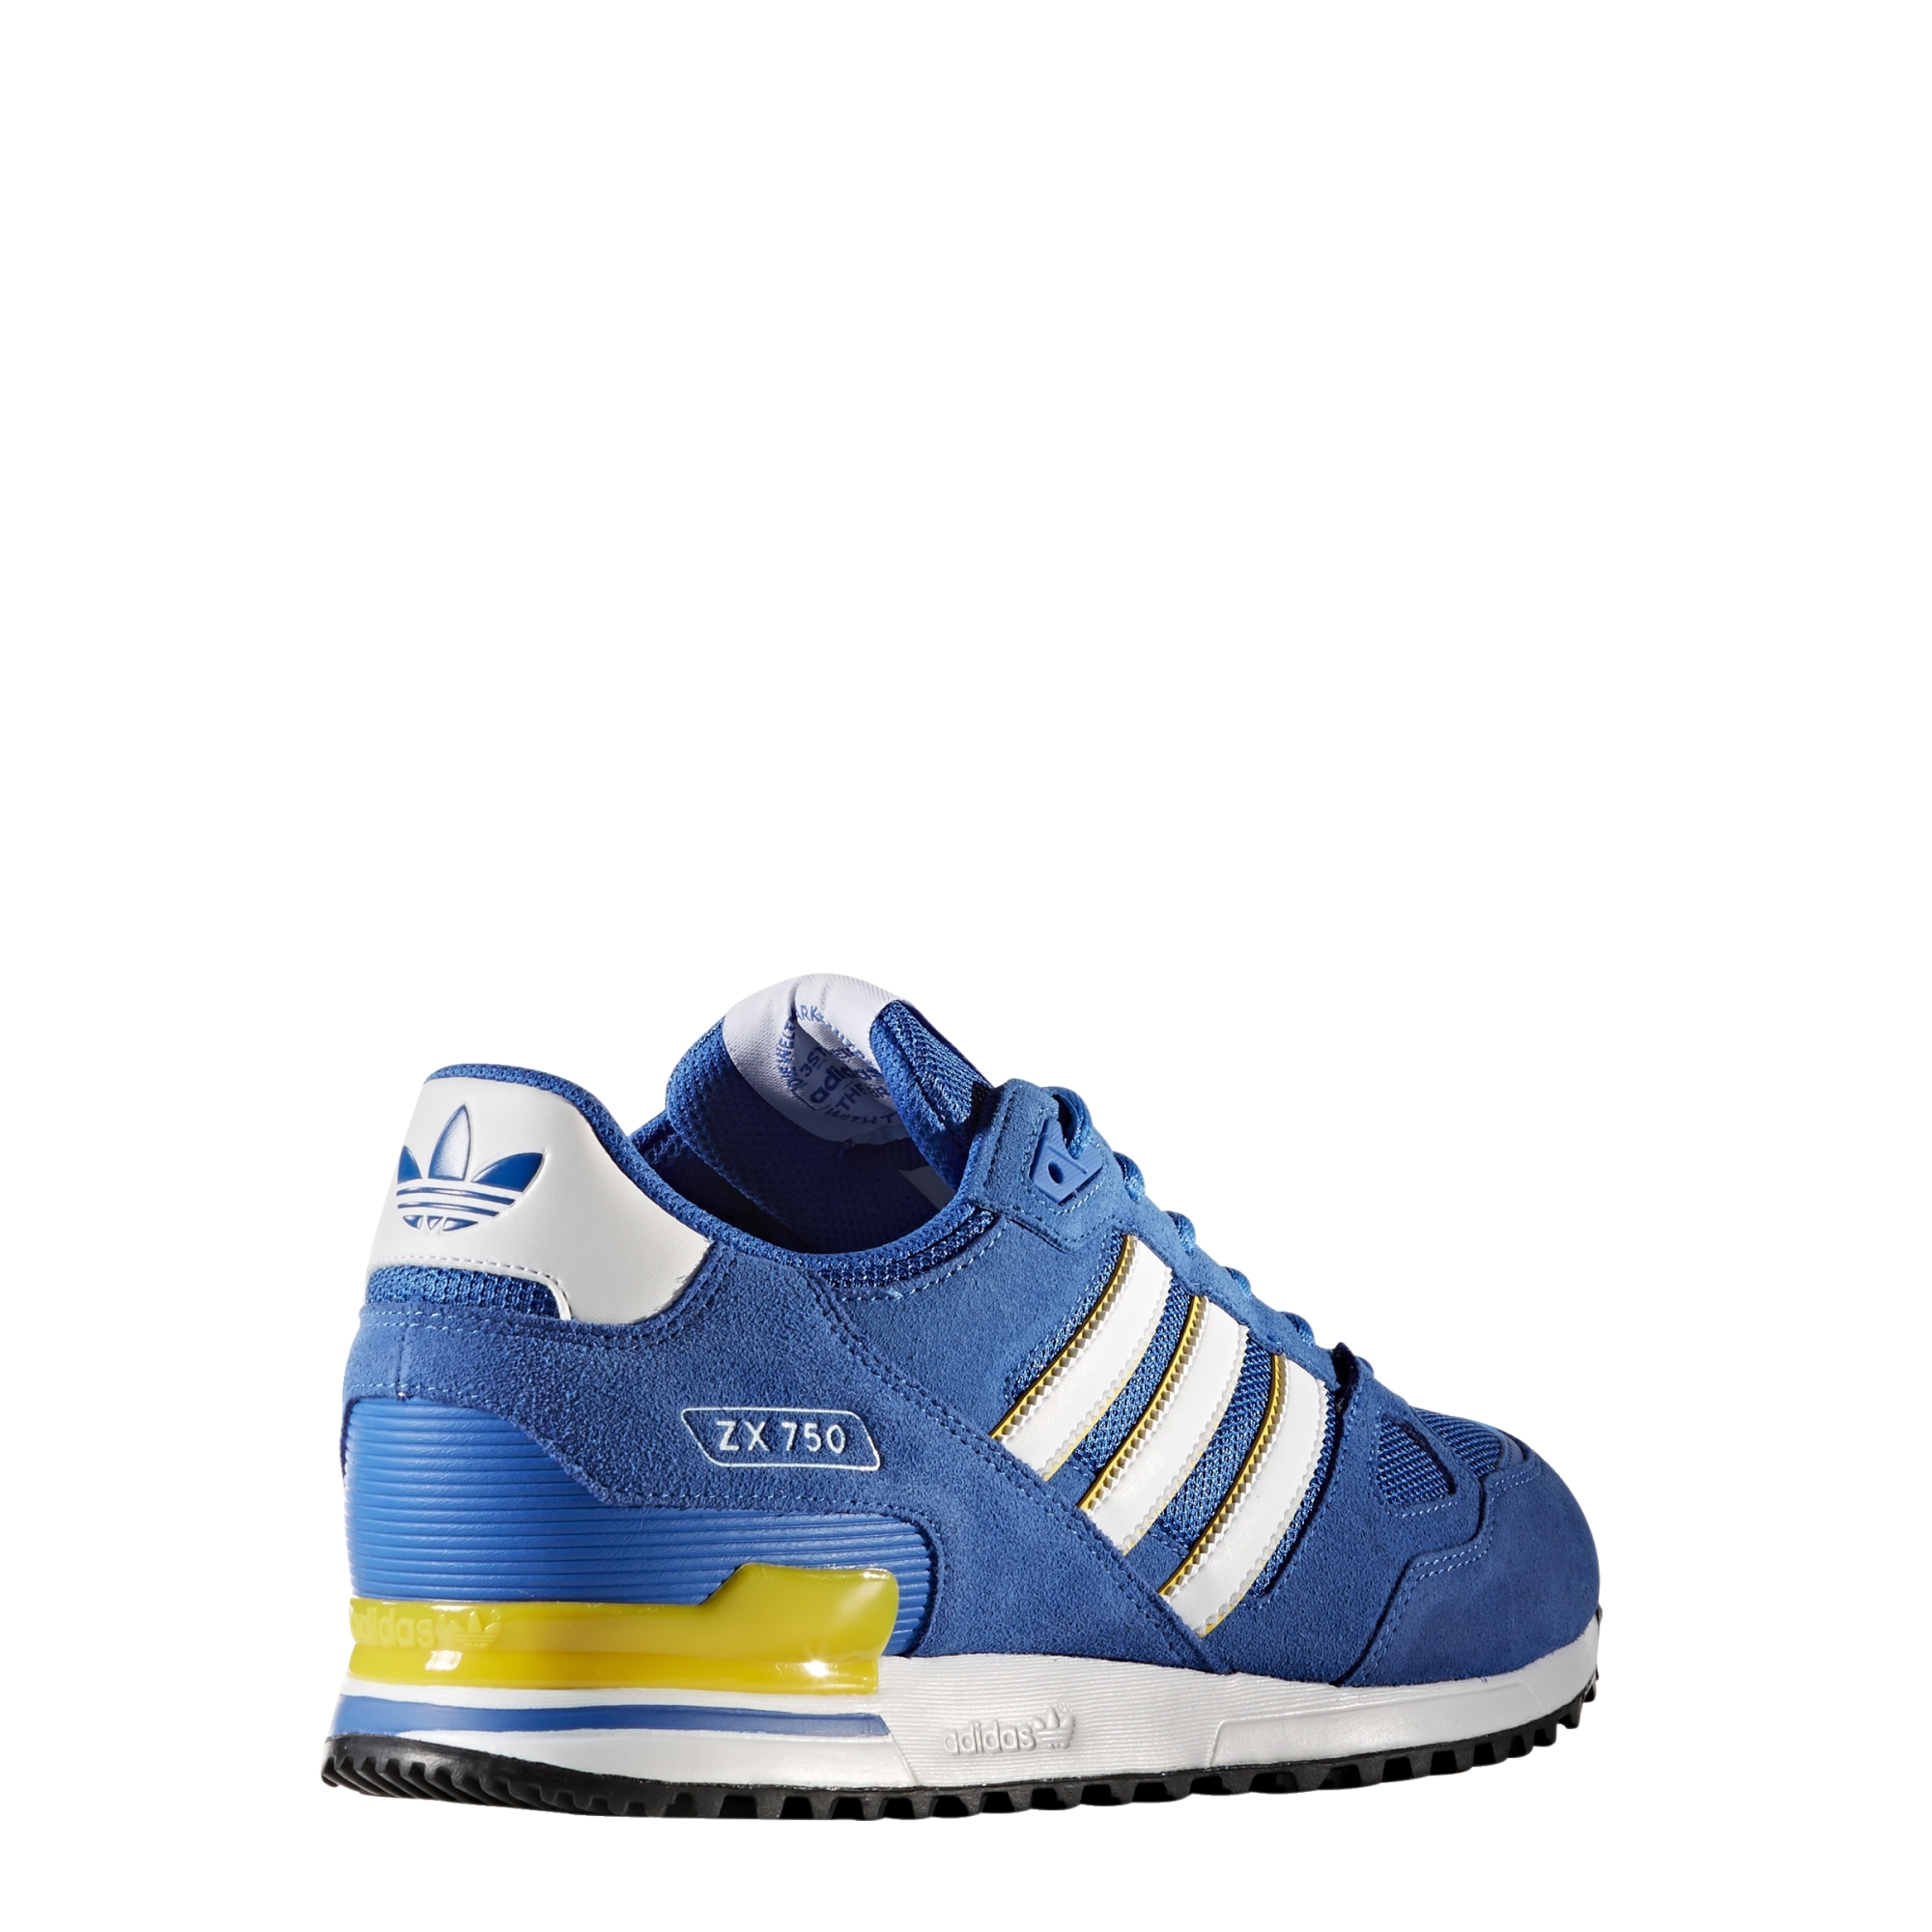 buty adidas zx 750 by 9272